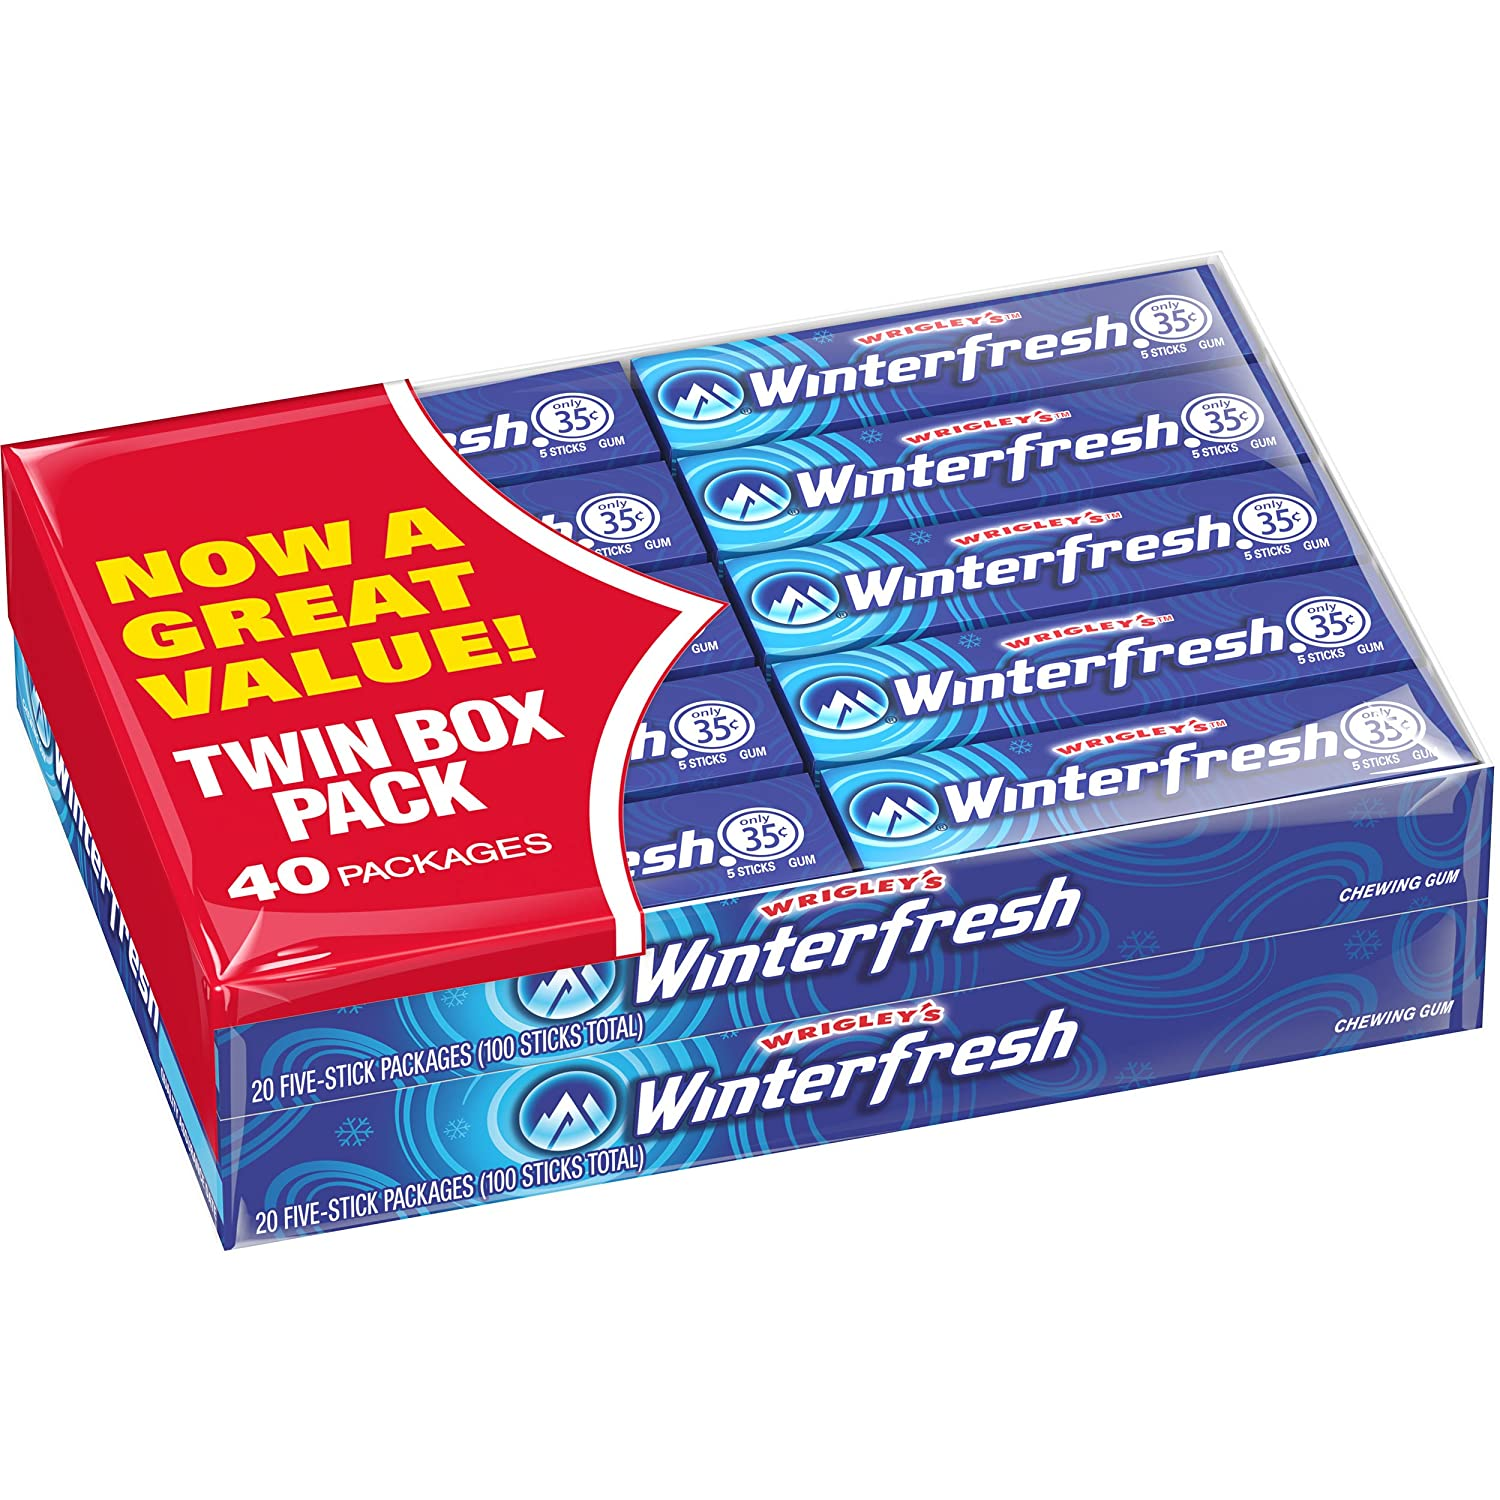 Wrigley's Winterfresh Gum, 5 Count, Pack of 40